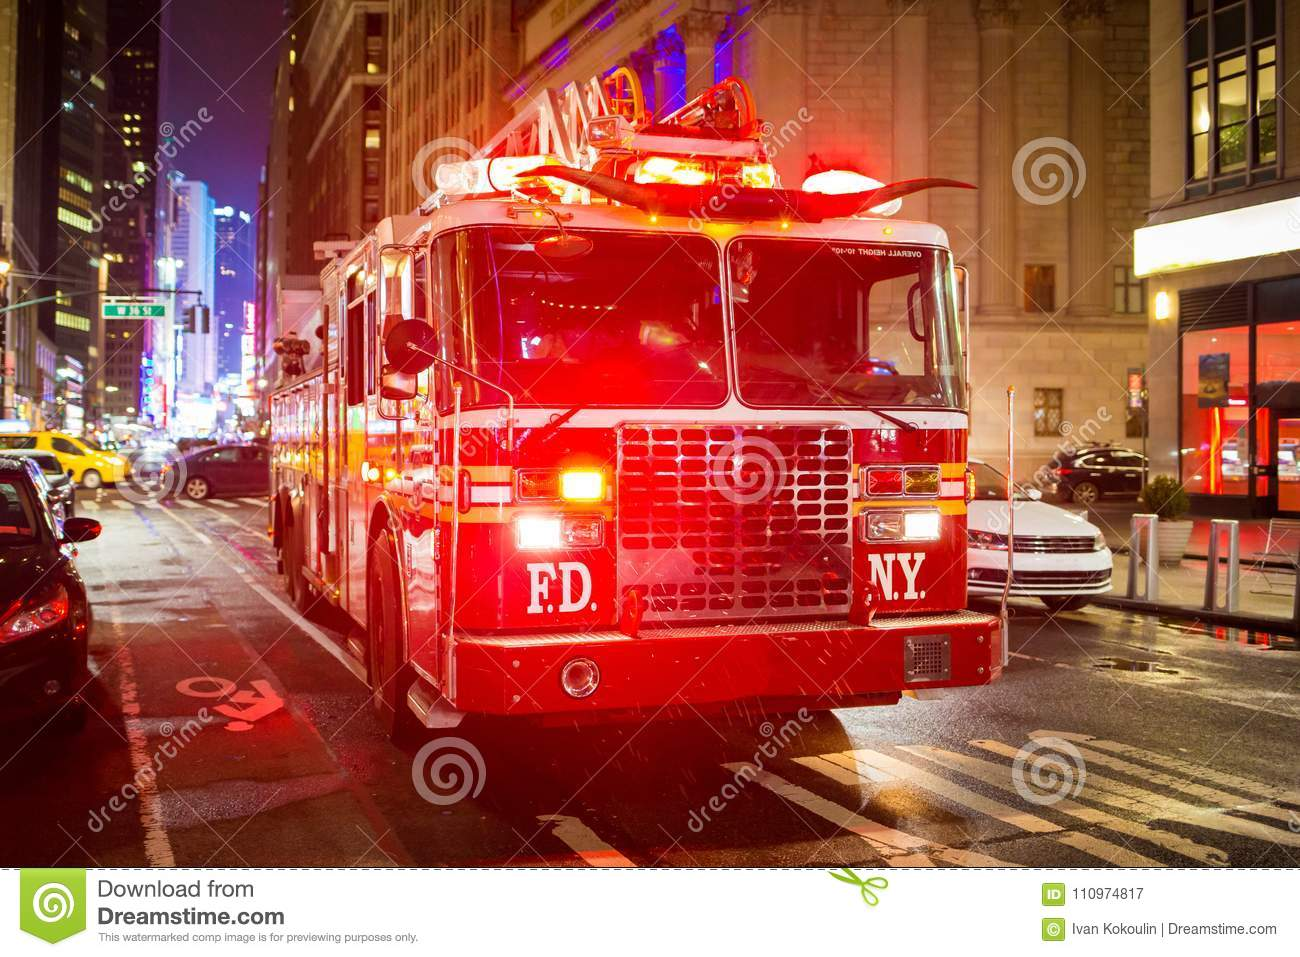 Fire truck with emergency lights on the street